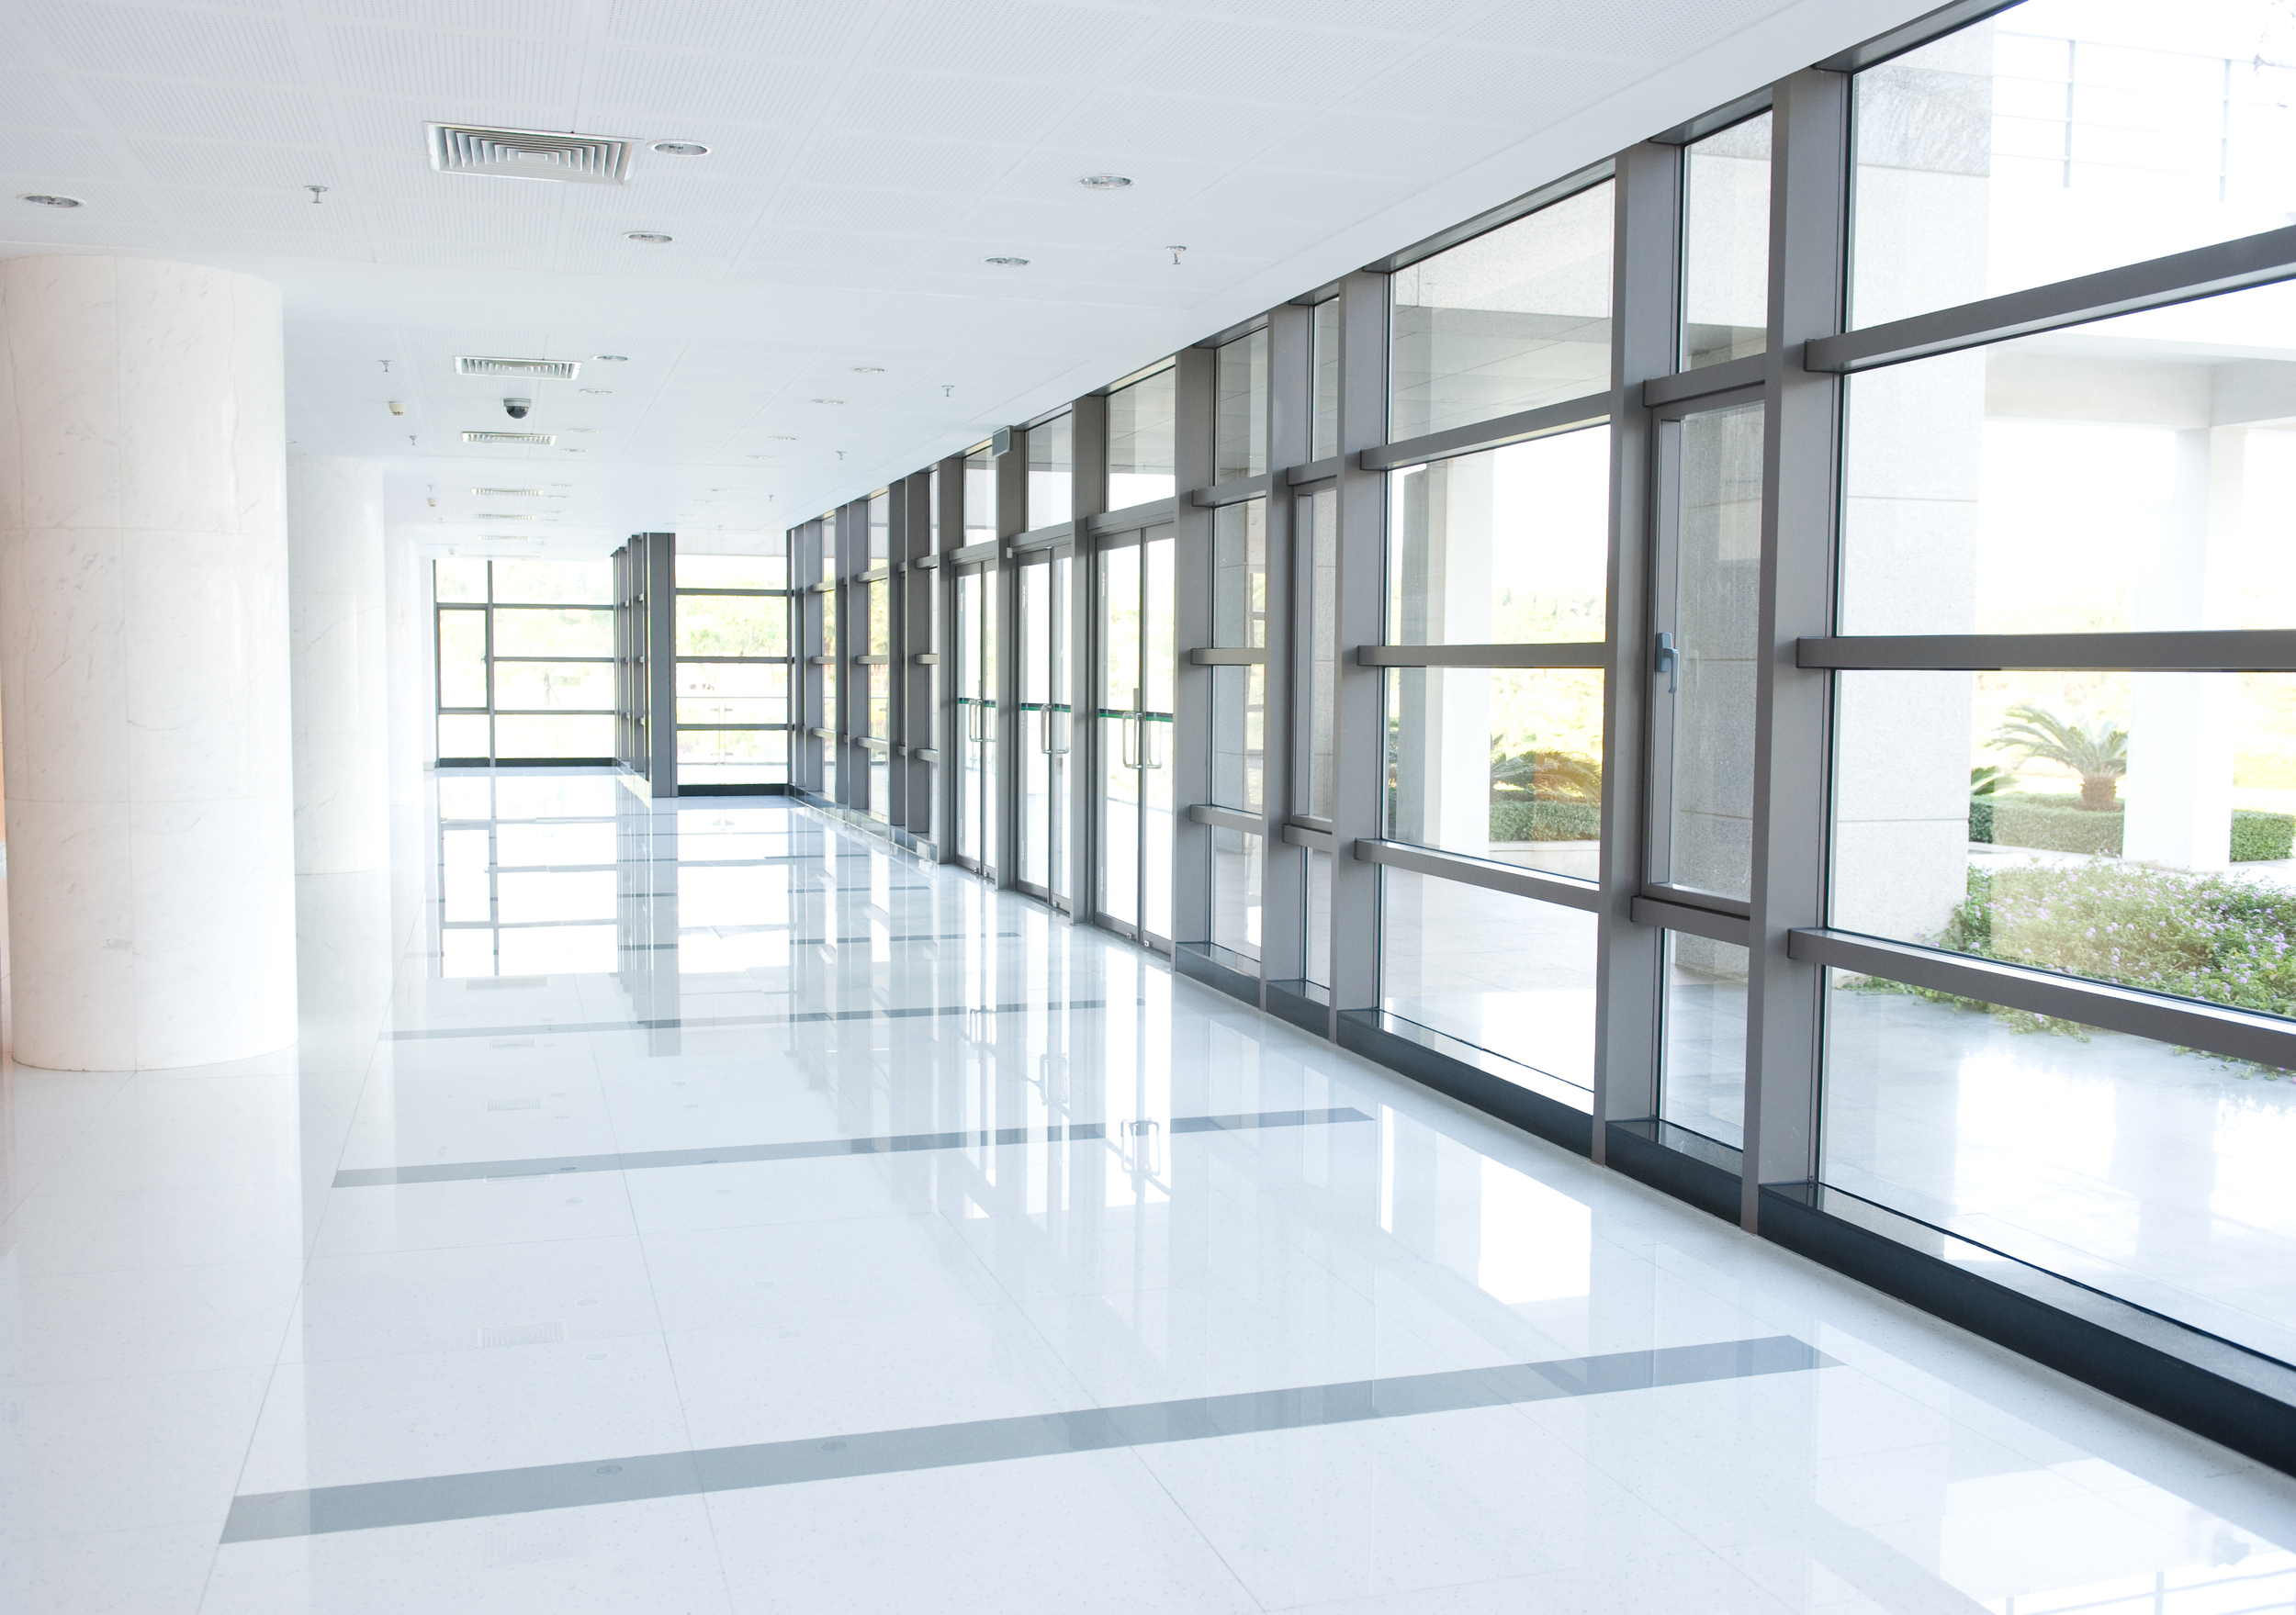 With over 25 years experience in property management IT, weunderstand the unique needs of building management.